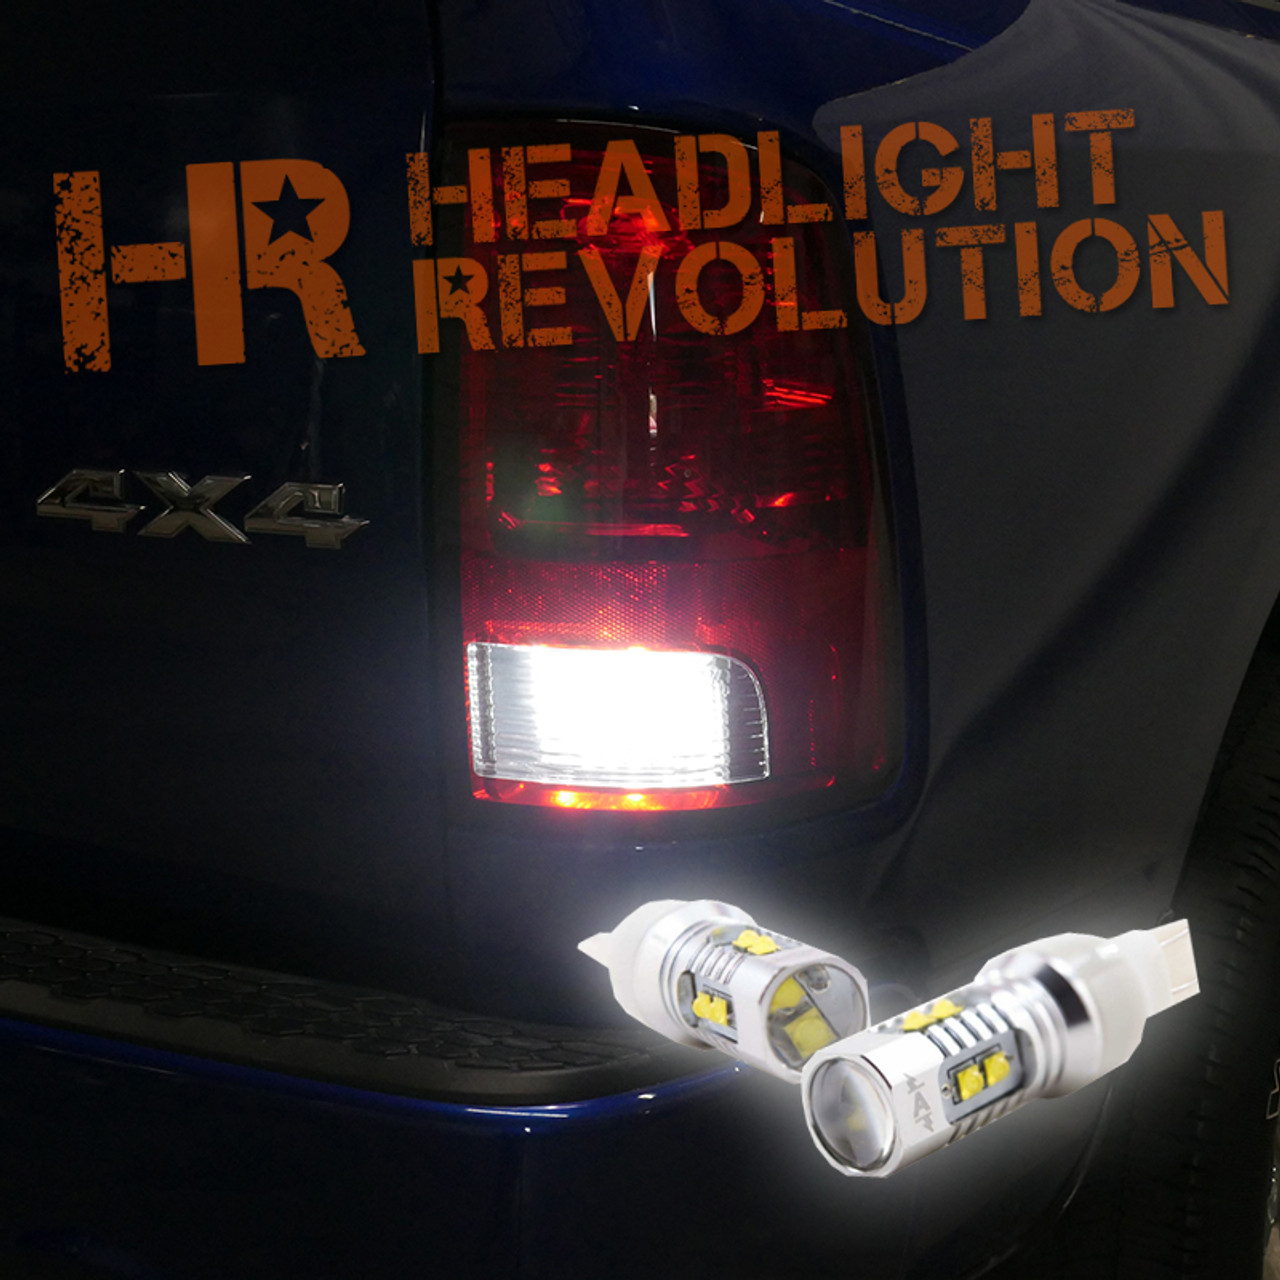 dodge ram led reverse bulbs upgrade headlight revolution